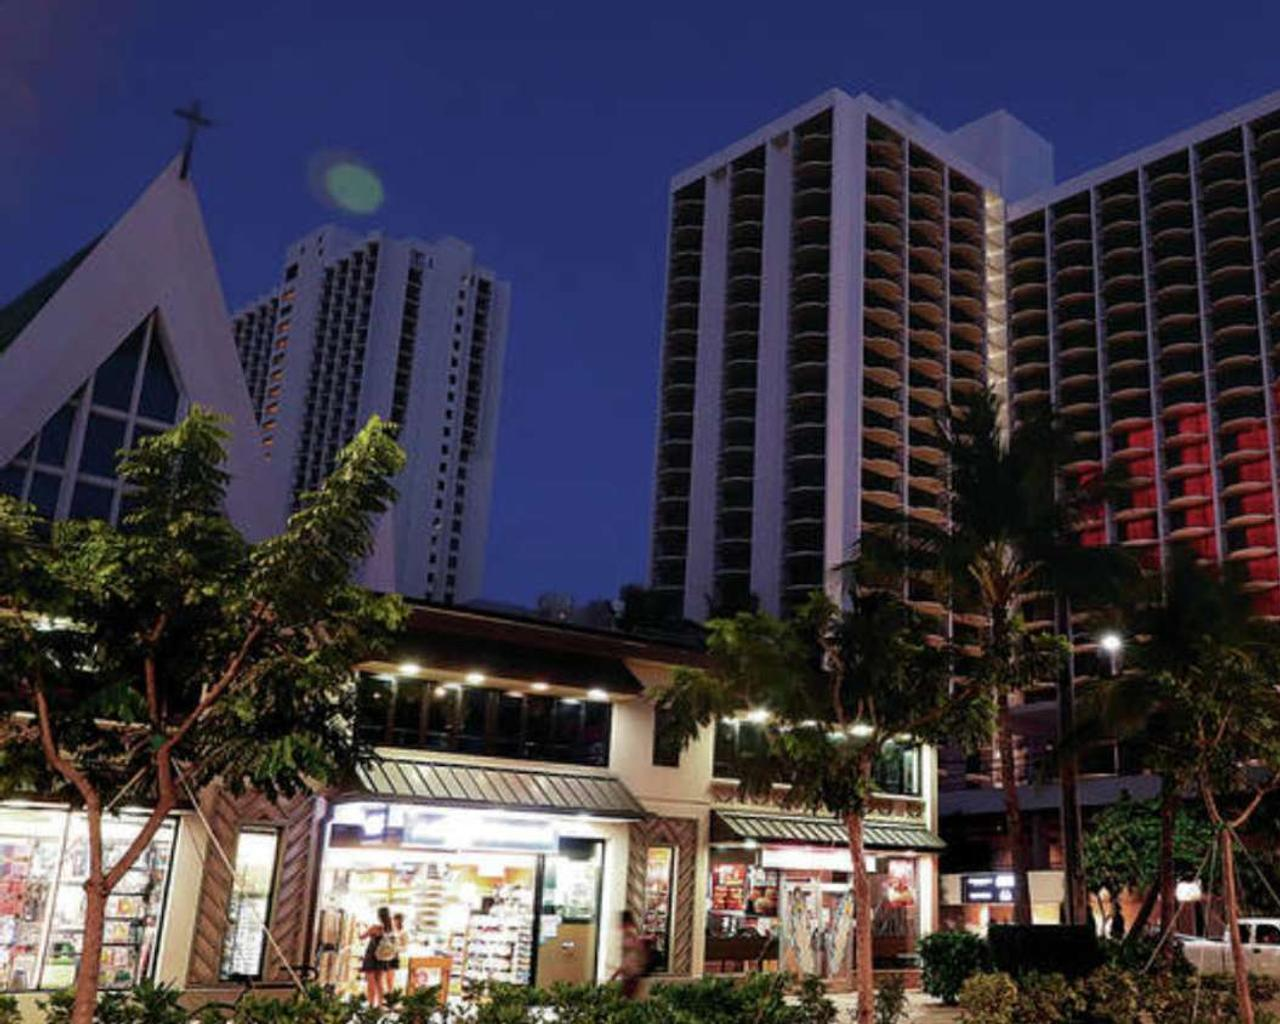 The stand at the Honolulu hotel is coming to an end after the death of an armed man